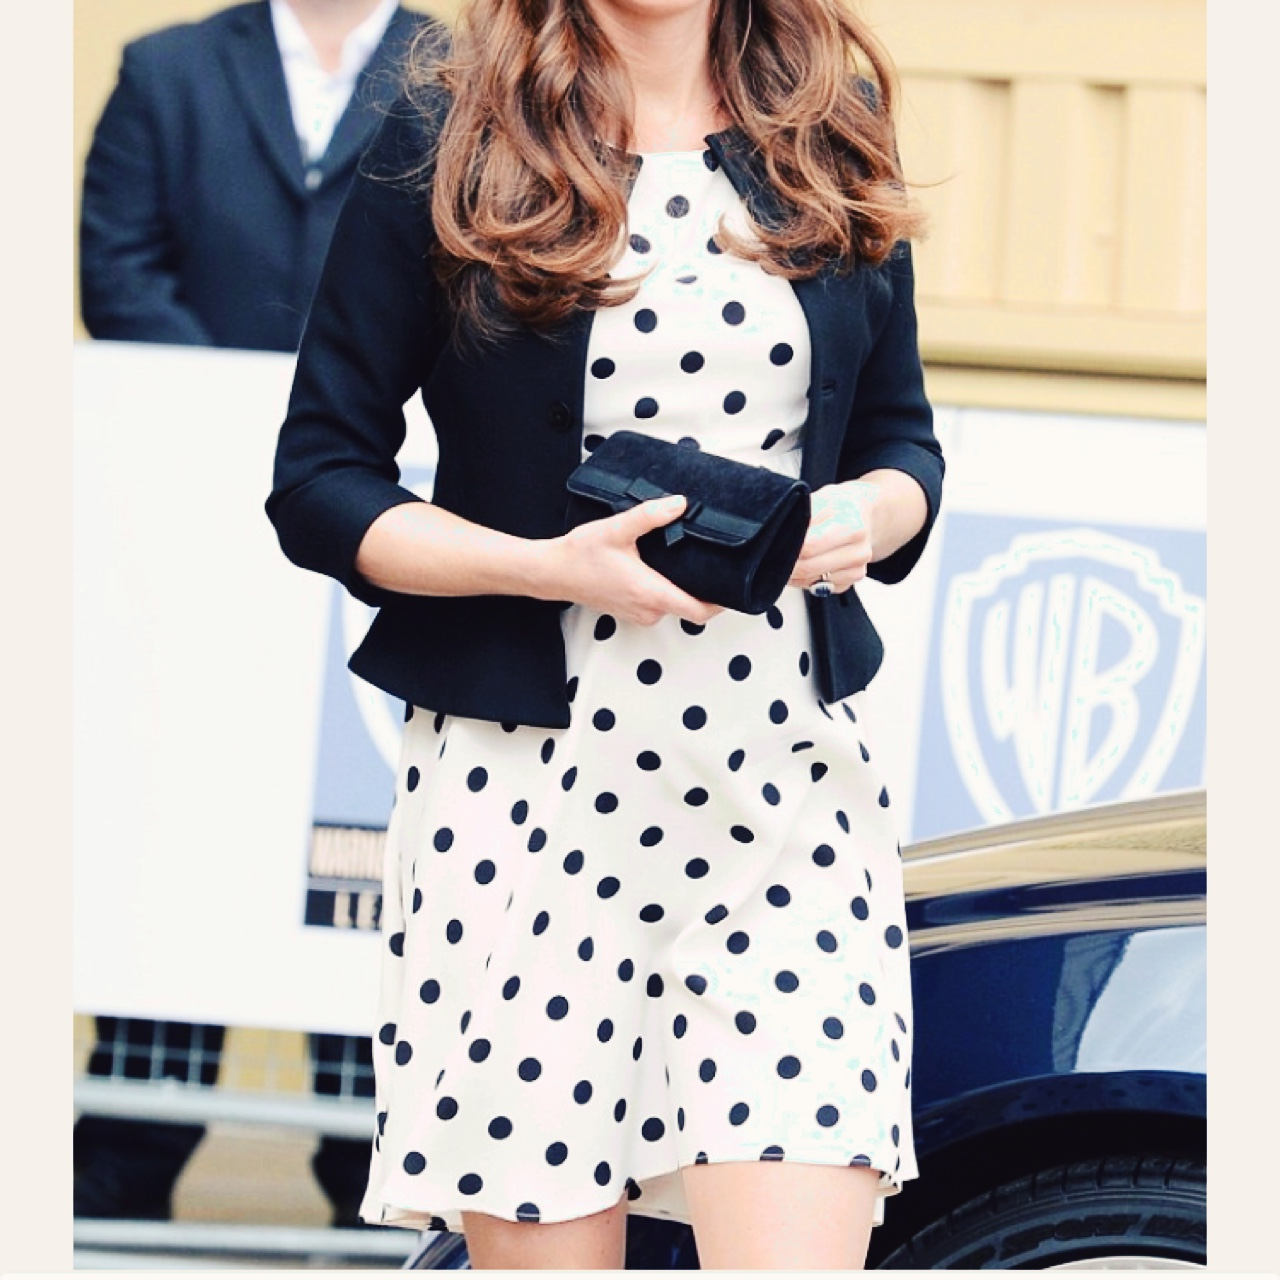 Topshop polka dot dress as worn by katemiddleton not maternity size topshop polka dot dress as worn by katemiddleton not maternity size 10 worn once depop ombrellifo Gallery